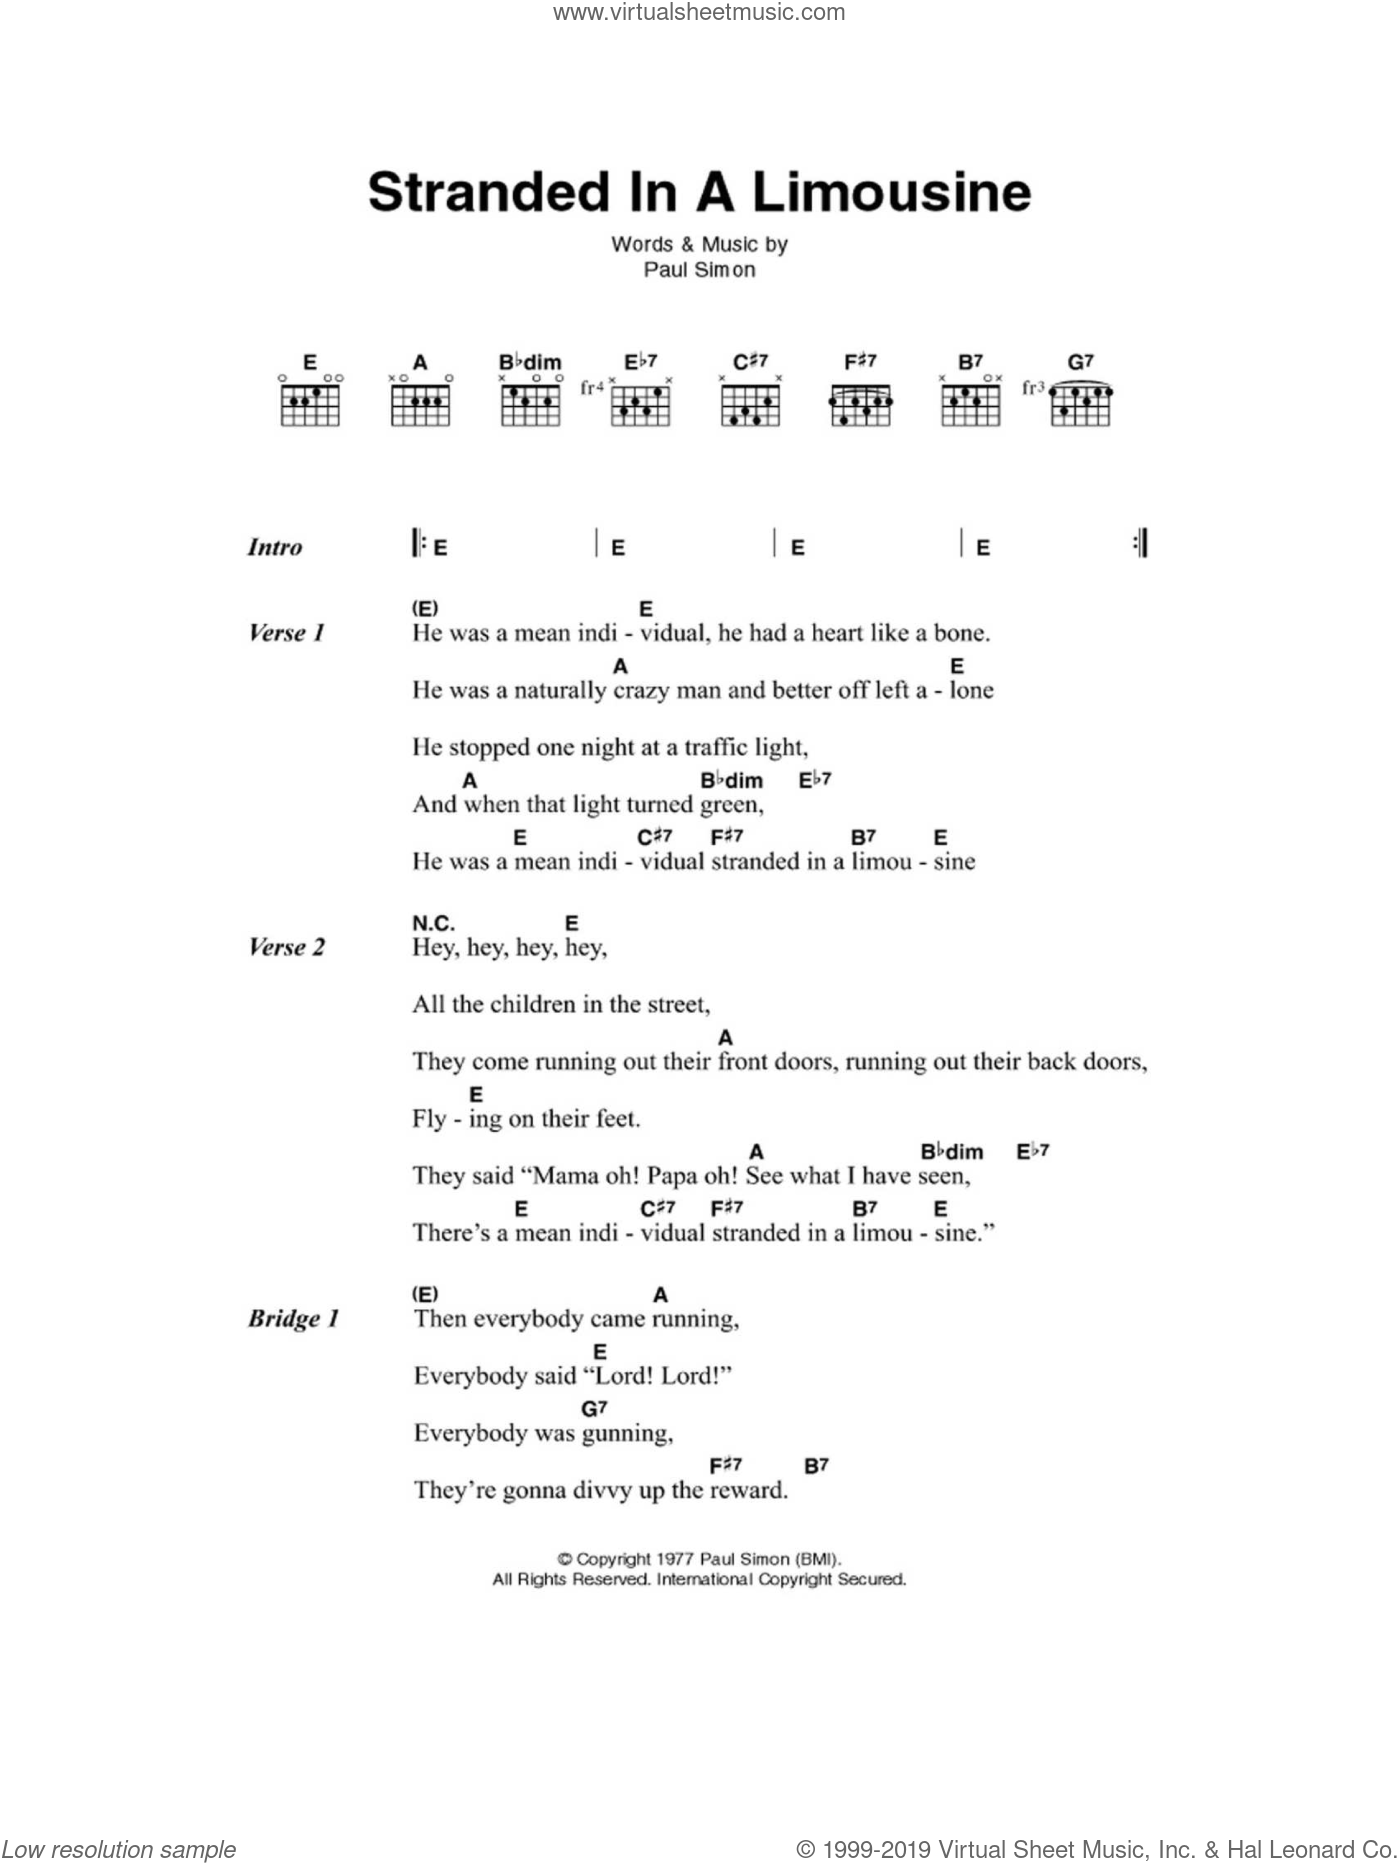 Simon - Stranded In A Limousine sheet music for guitar (chords)